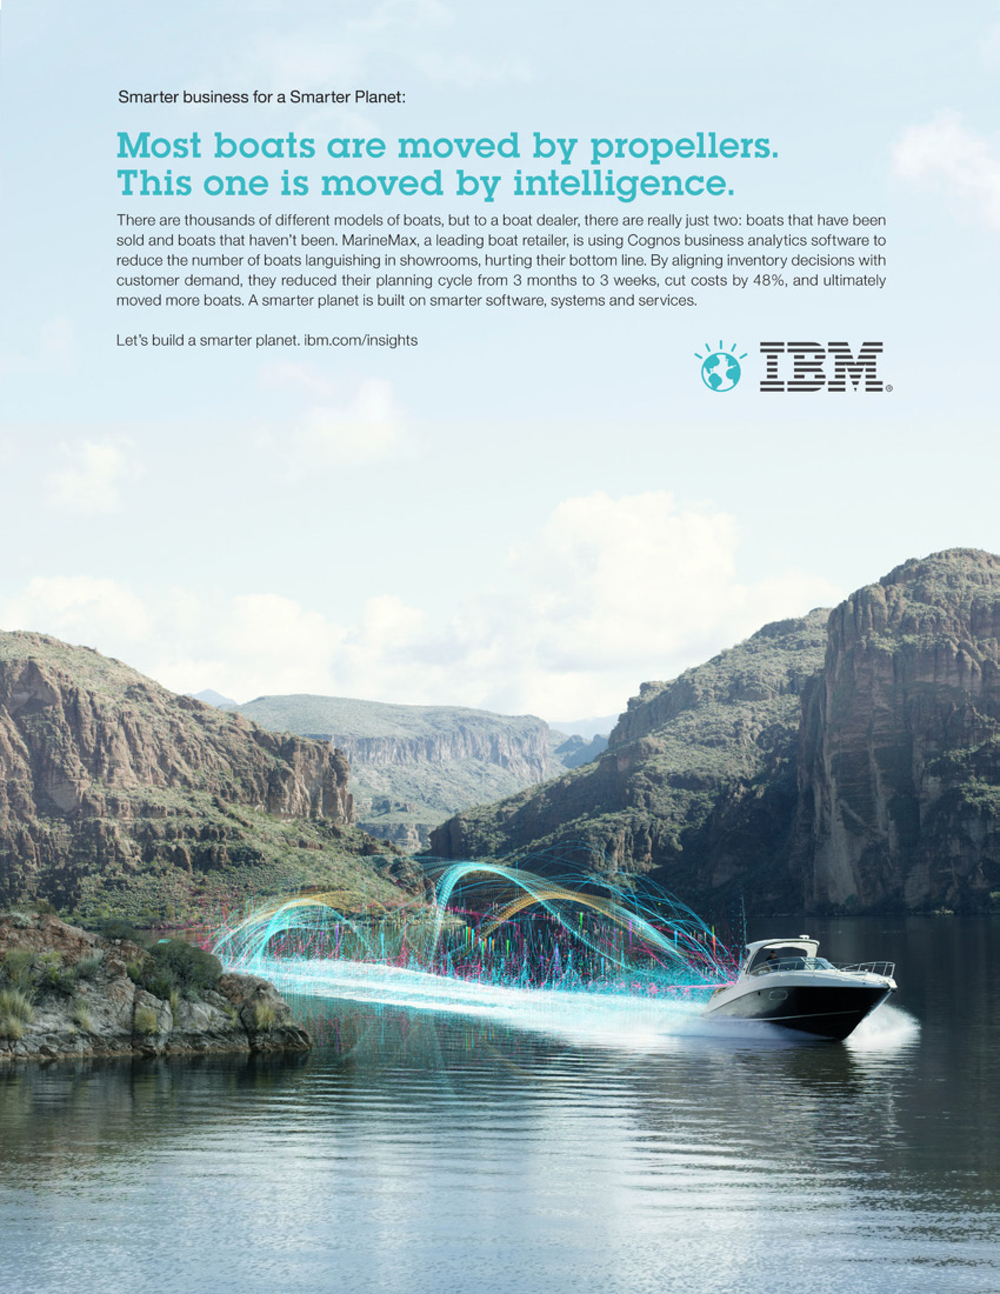 IBM_marinemax.jpg